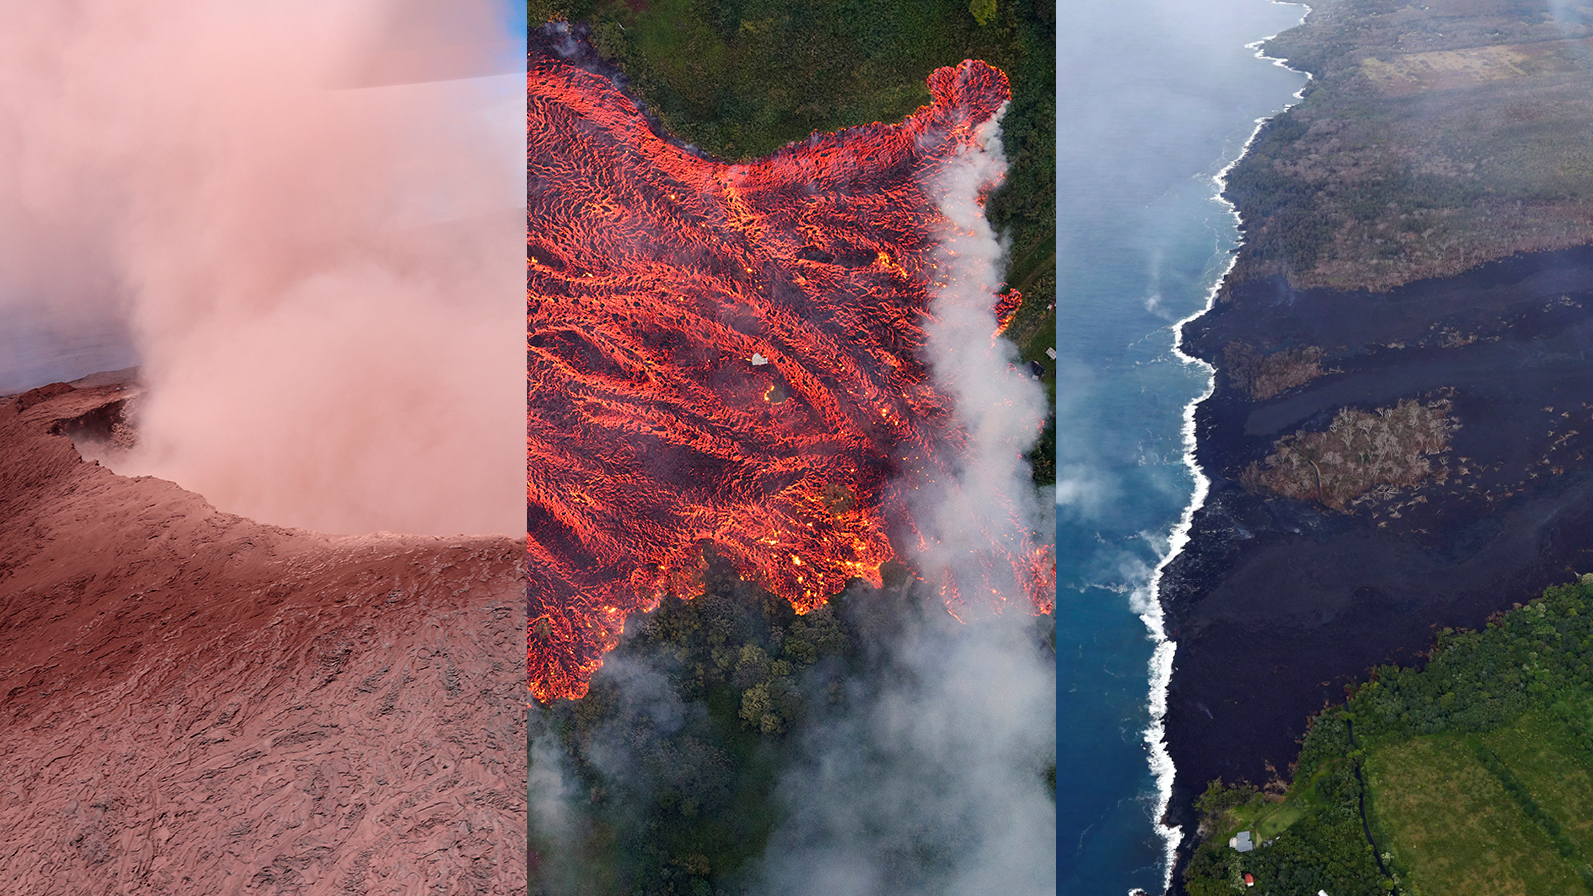 How has almost a month of creeping lava changed the Hawaiian landscape?